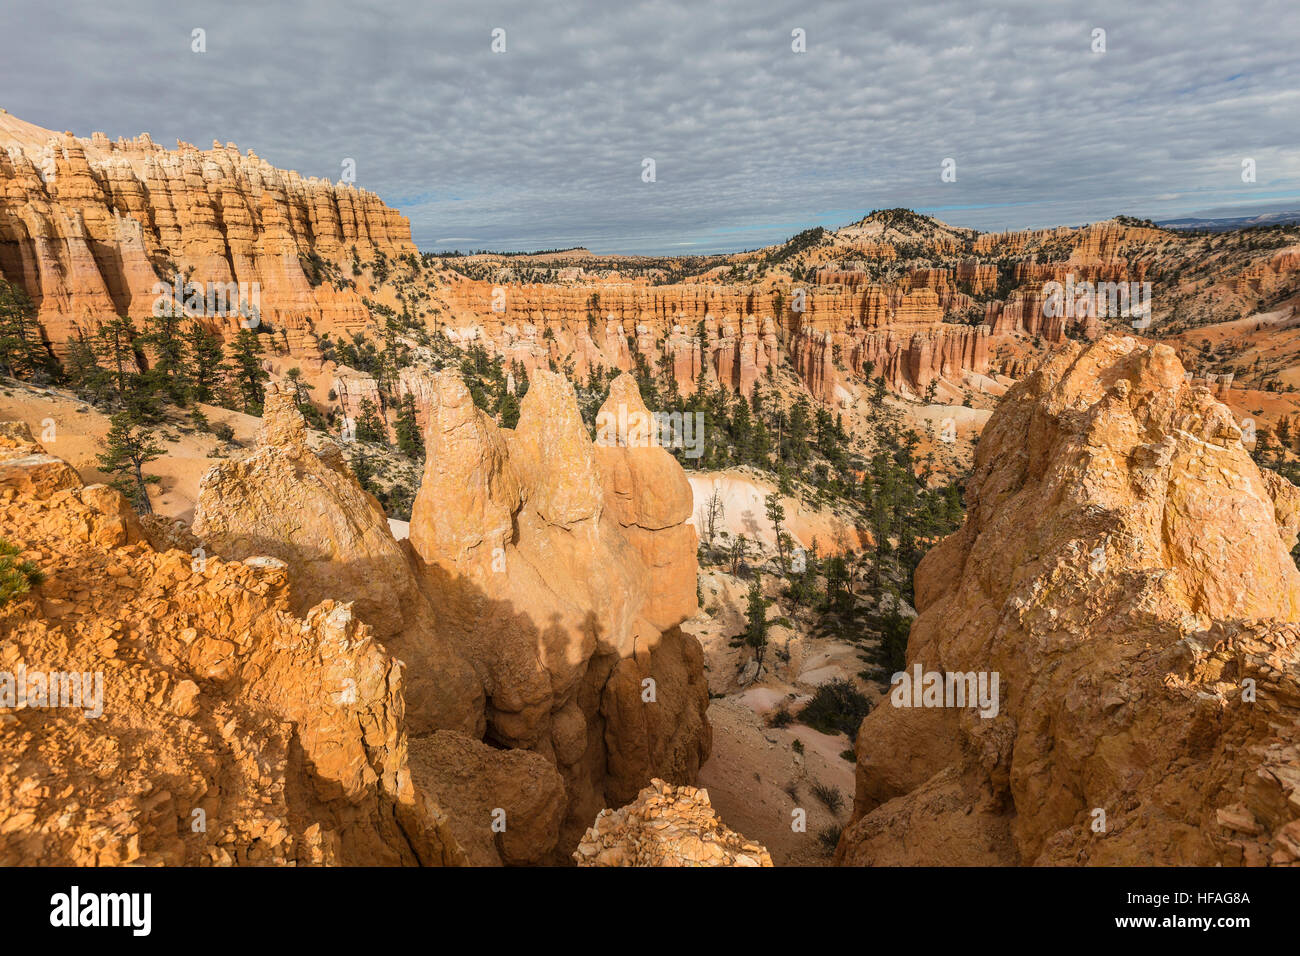 Bryce Canyon National Park afternoon hoodoo view in Southern Utah. - Stock Image